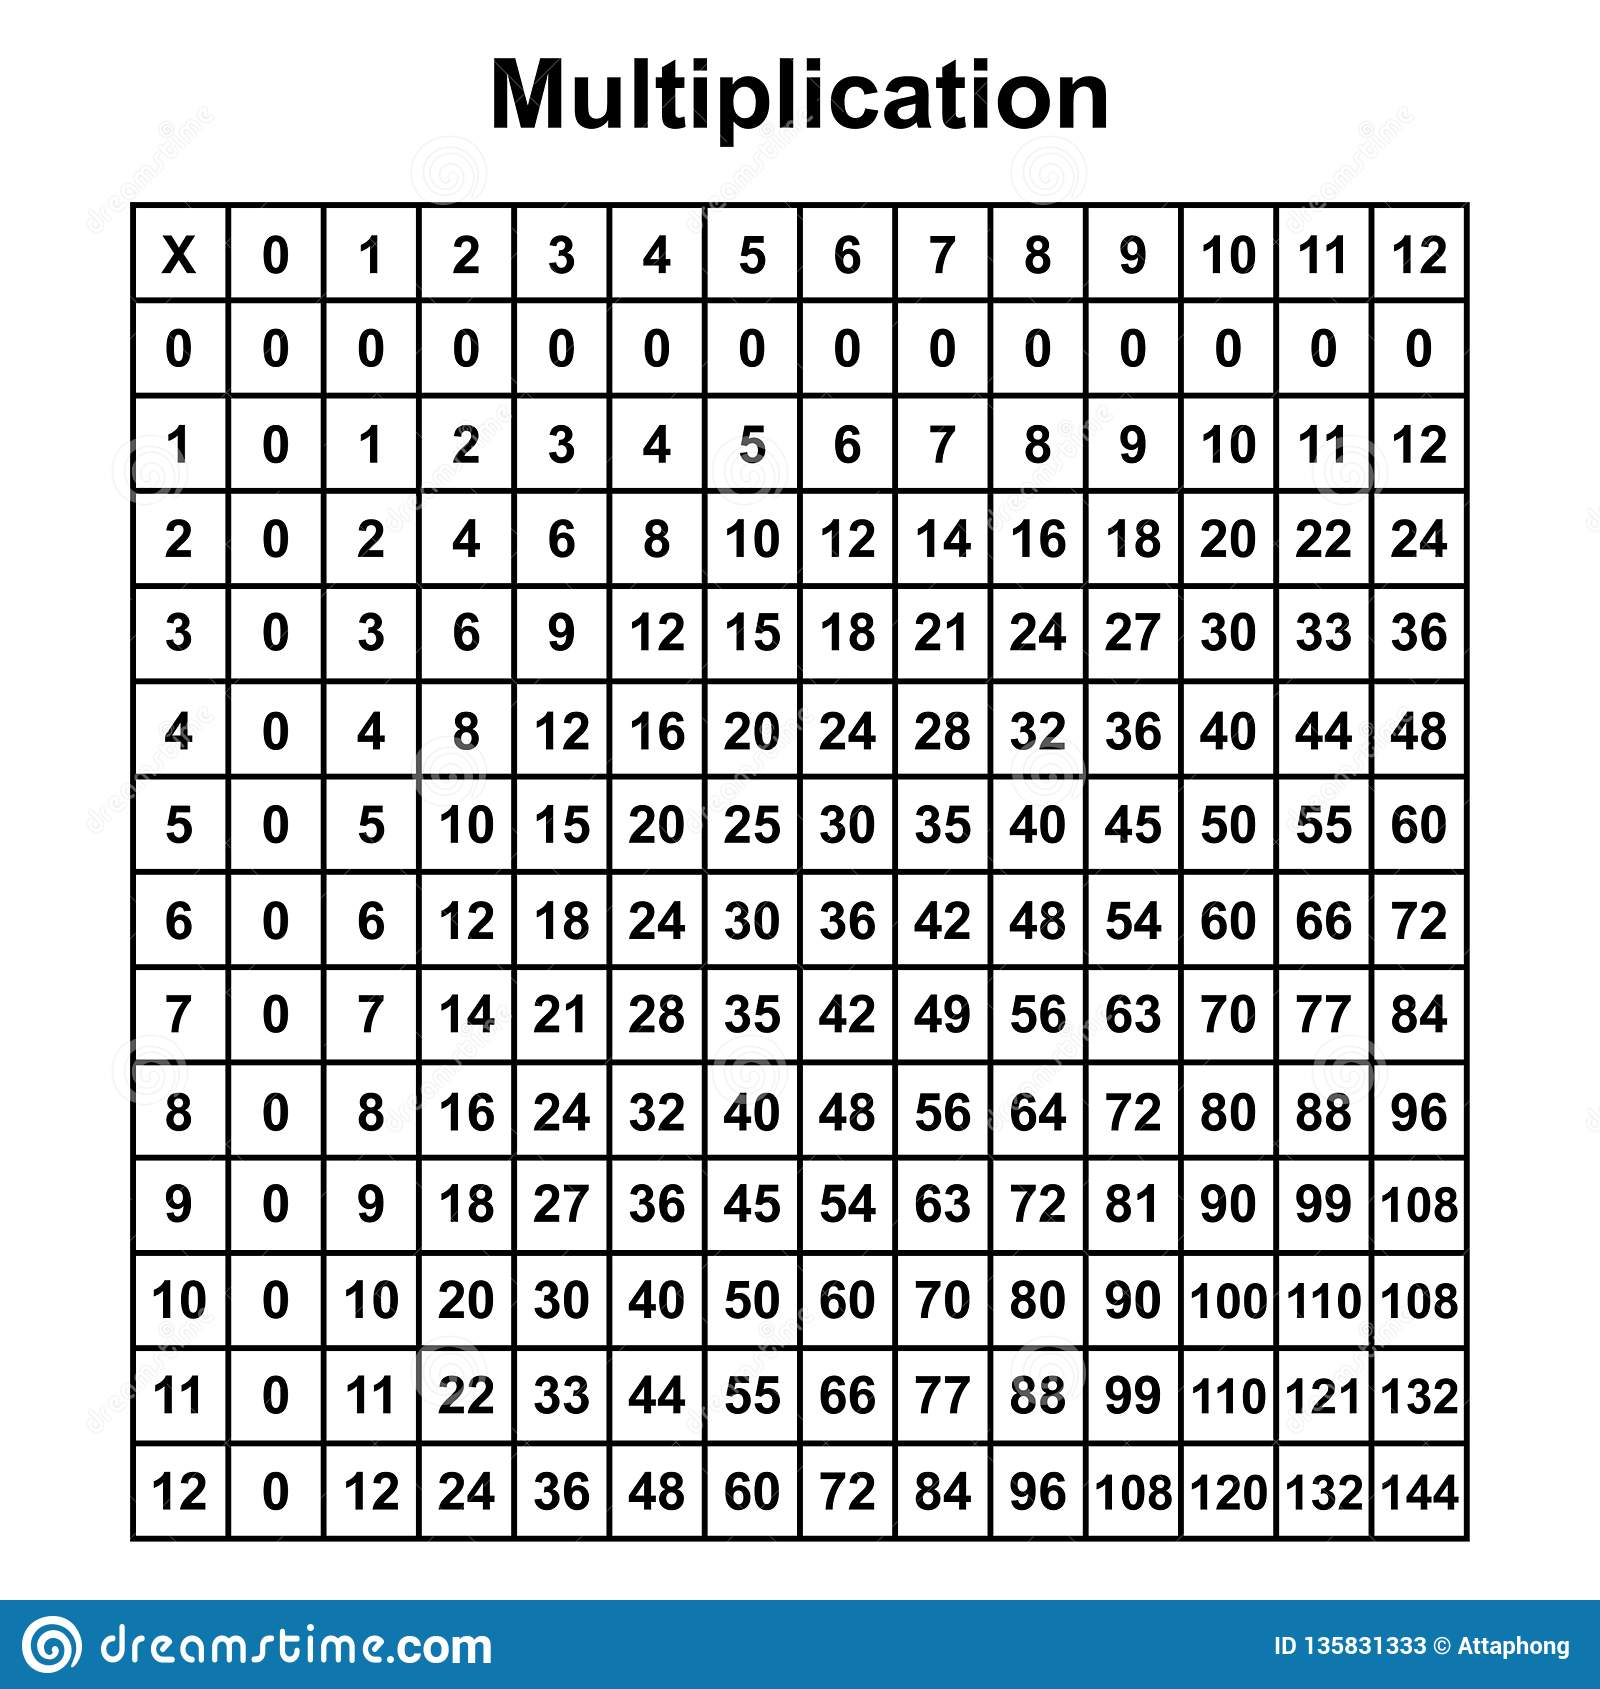 Multiplication Table Chart Or Multiplication Table Printable within Printable Multiplication Chart